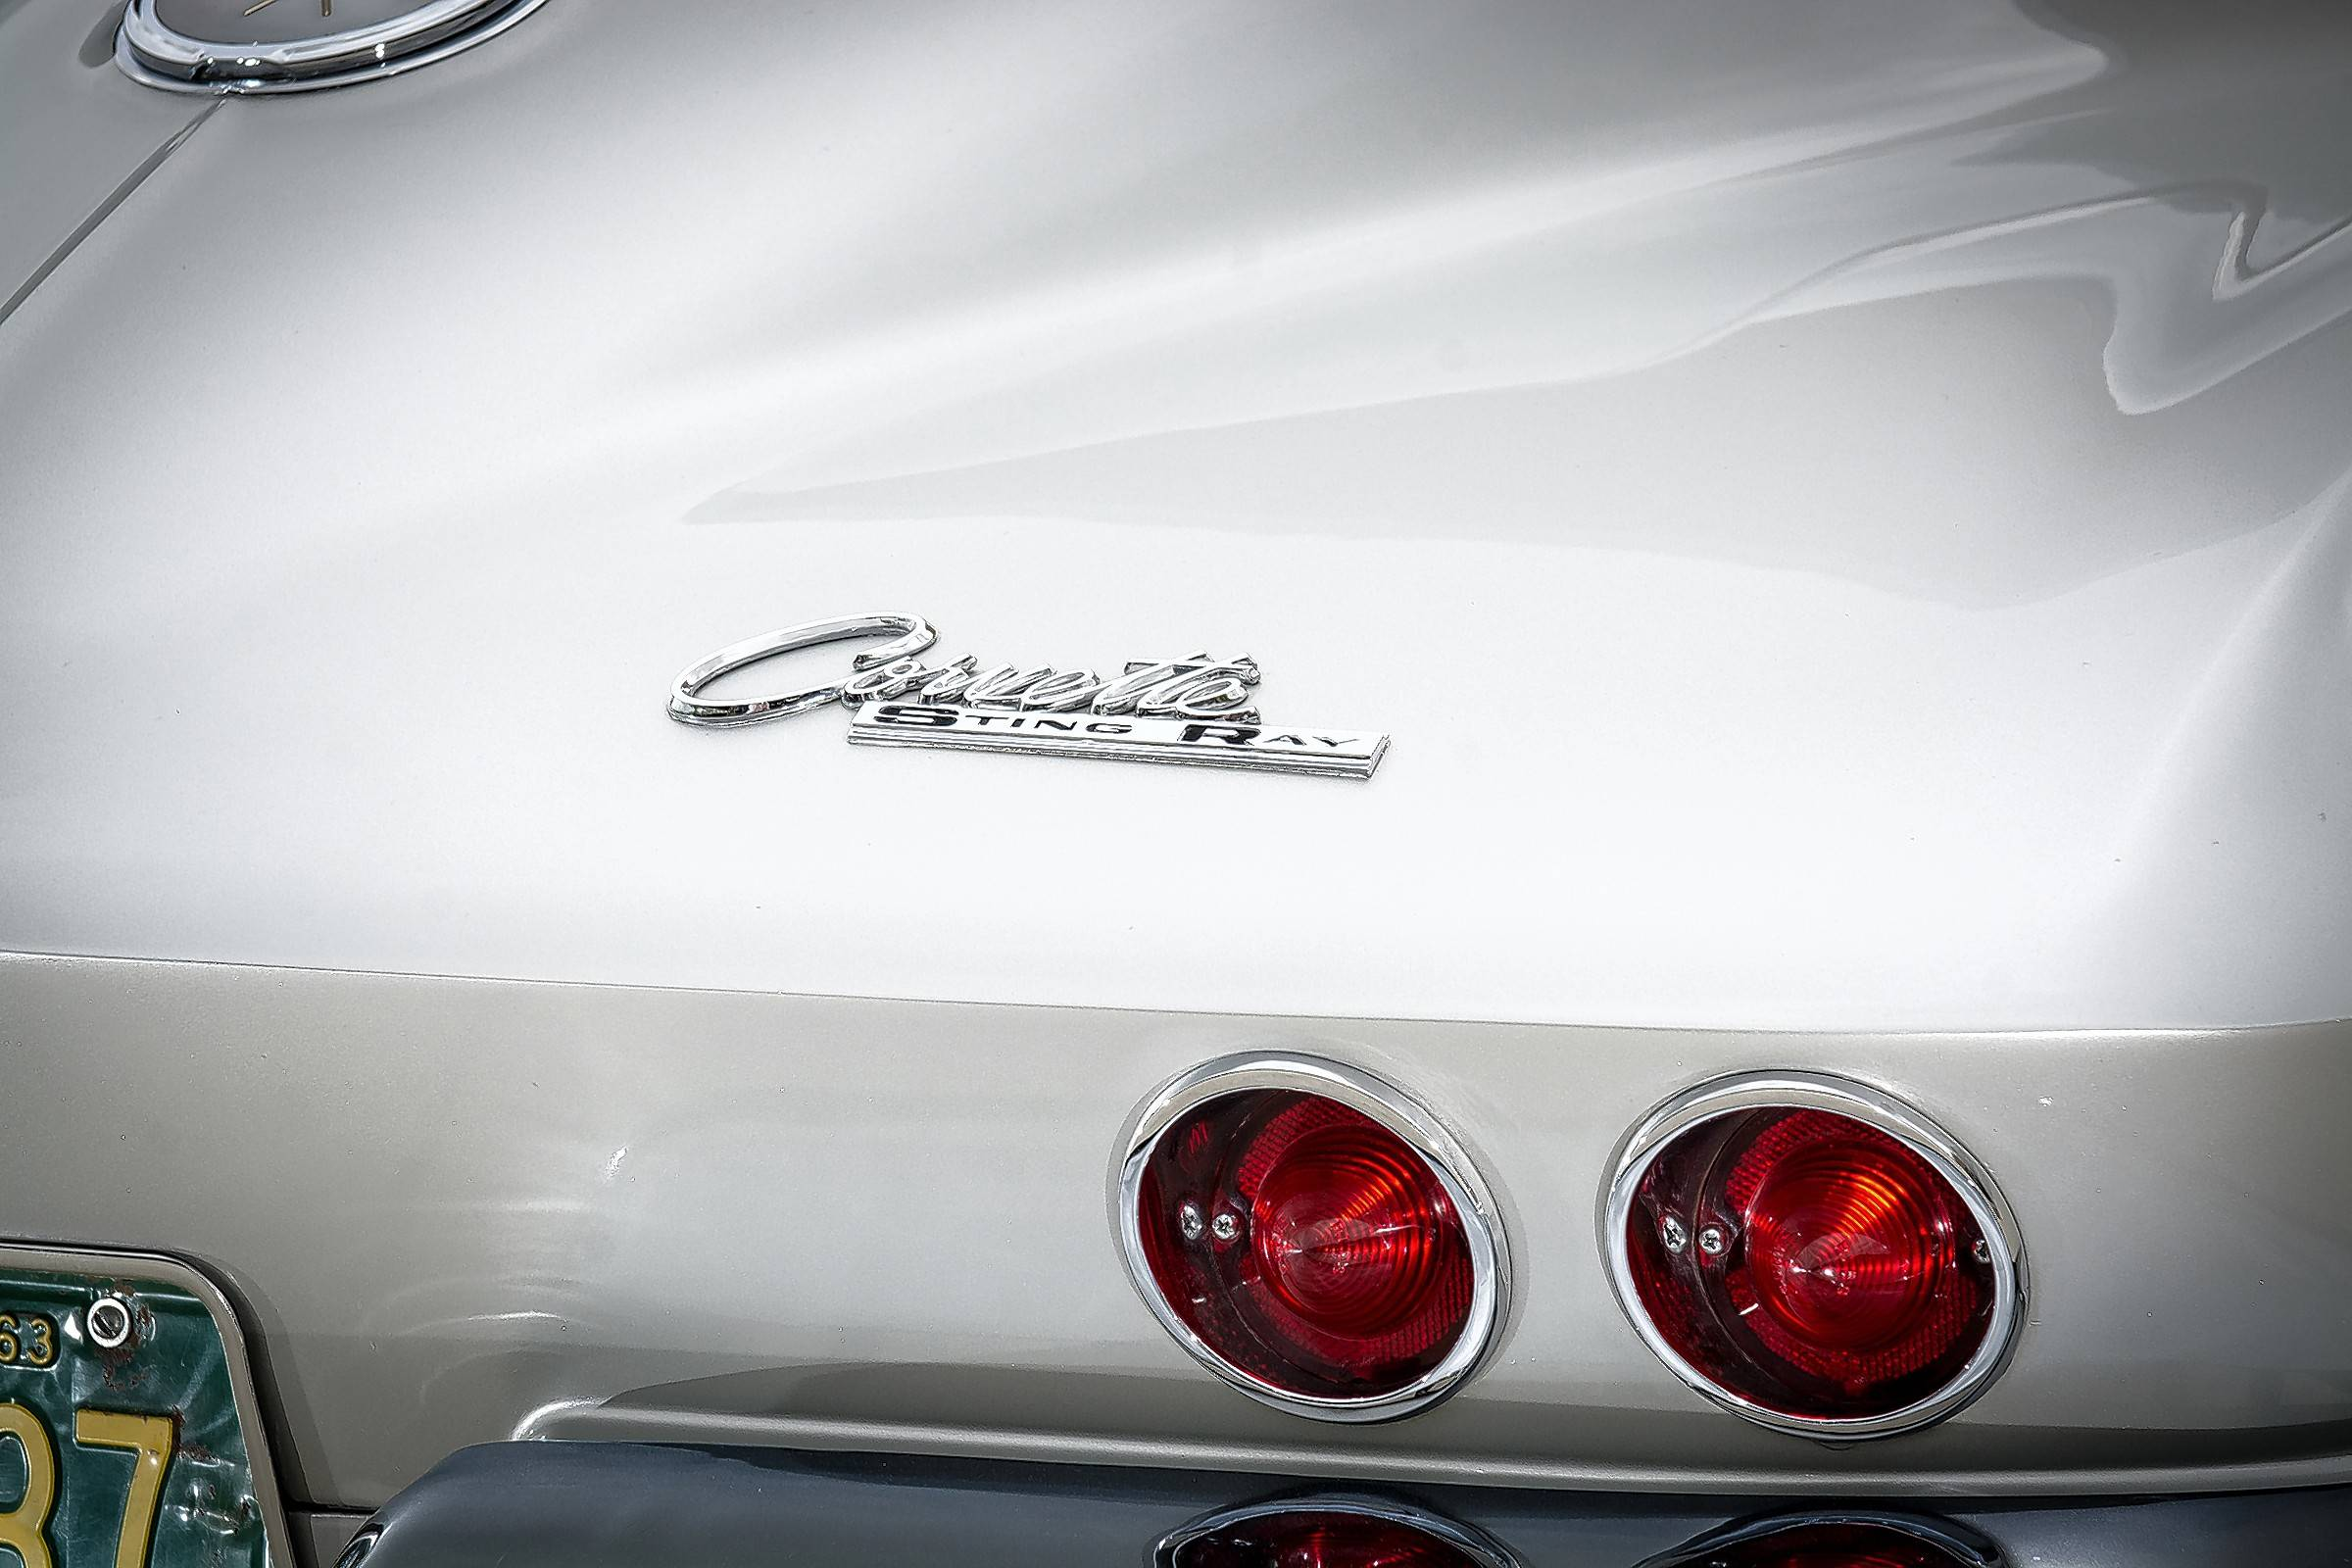 The Bombens returned the Corvette to its original Sebring Silver color.